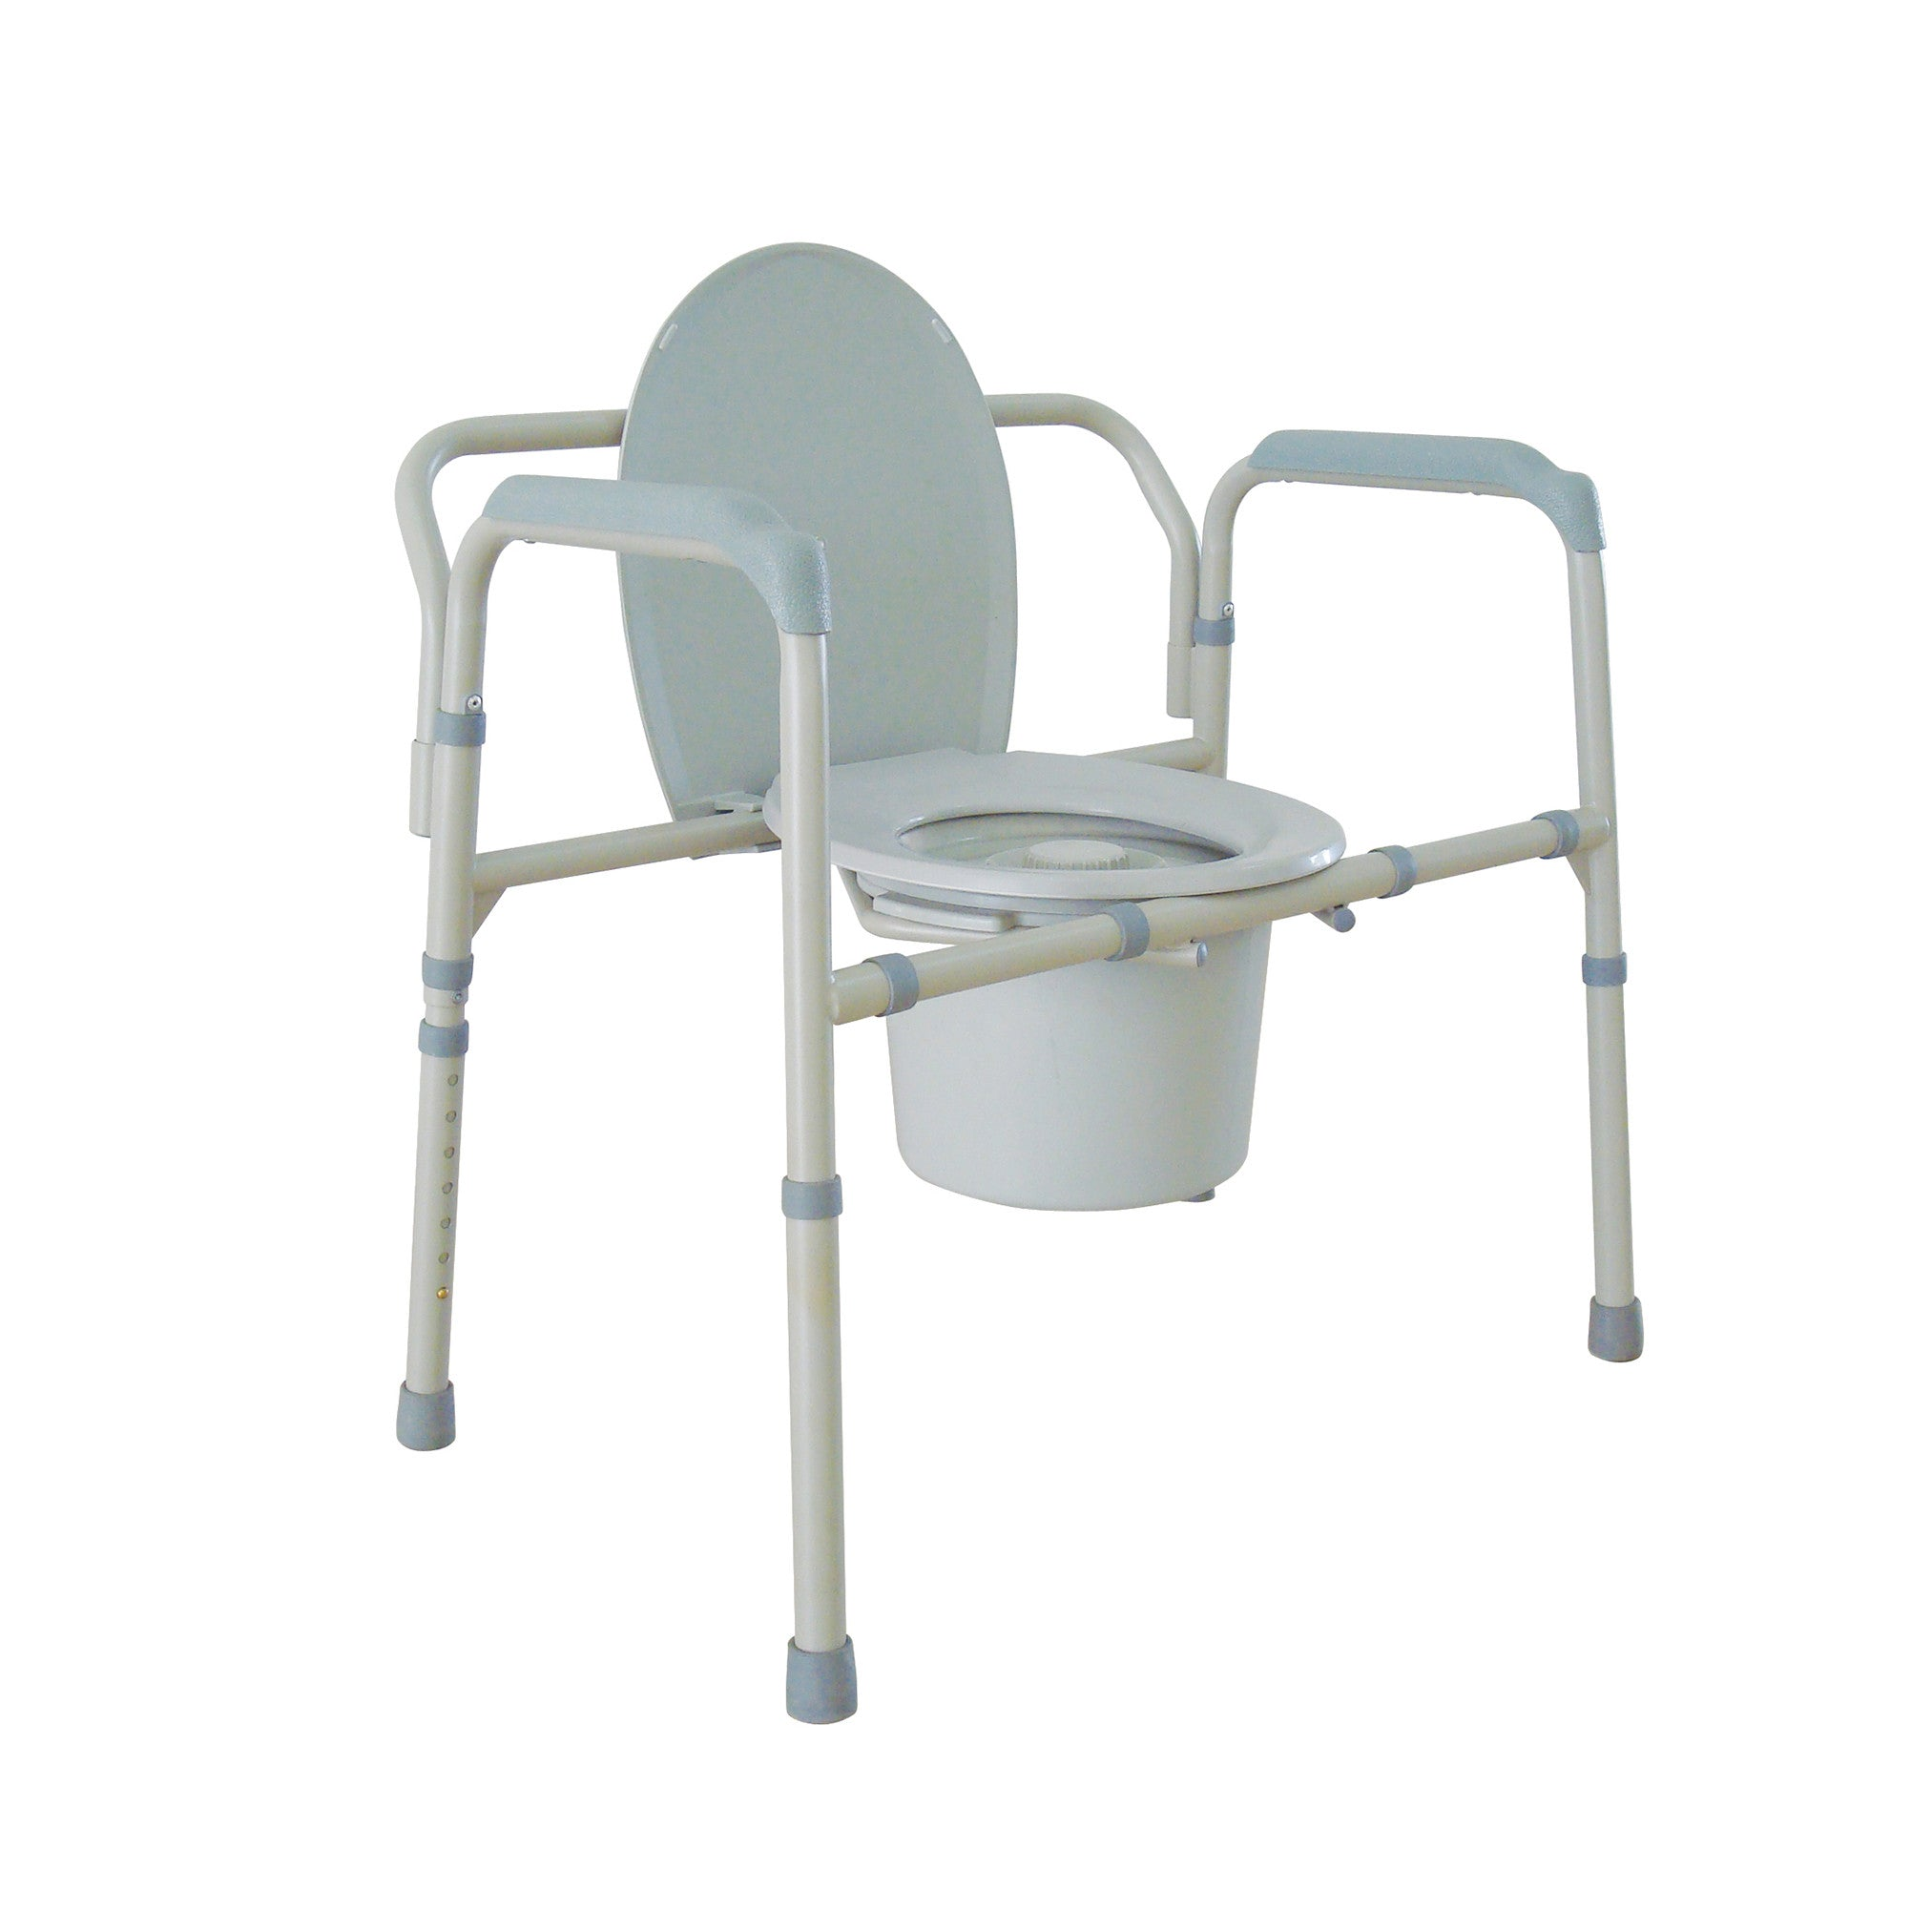 Heavy Duty Bariatric Folding Bedside Commode Chair | CSA Medical Supply